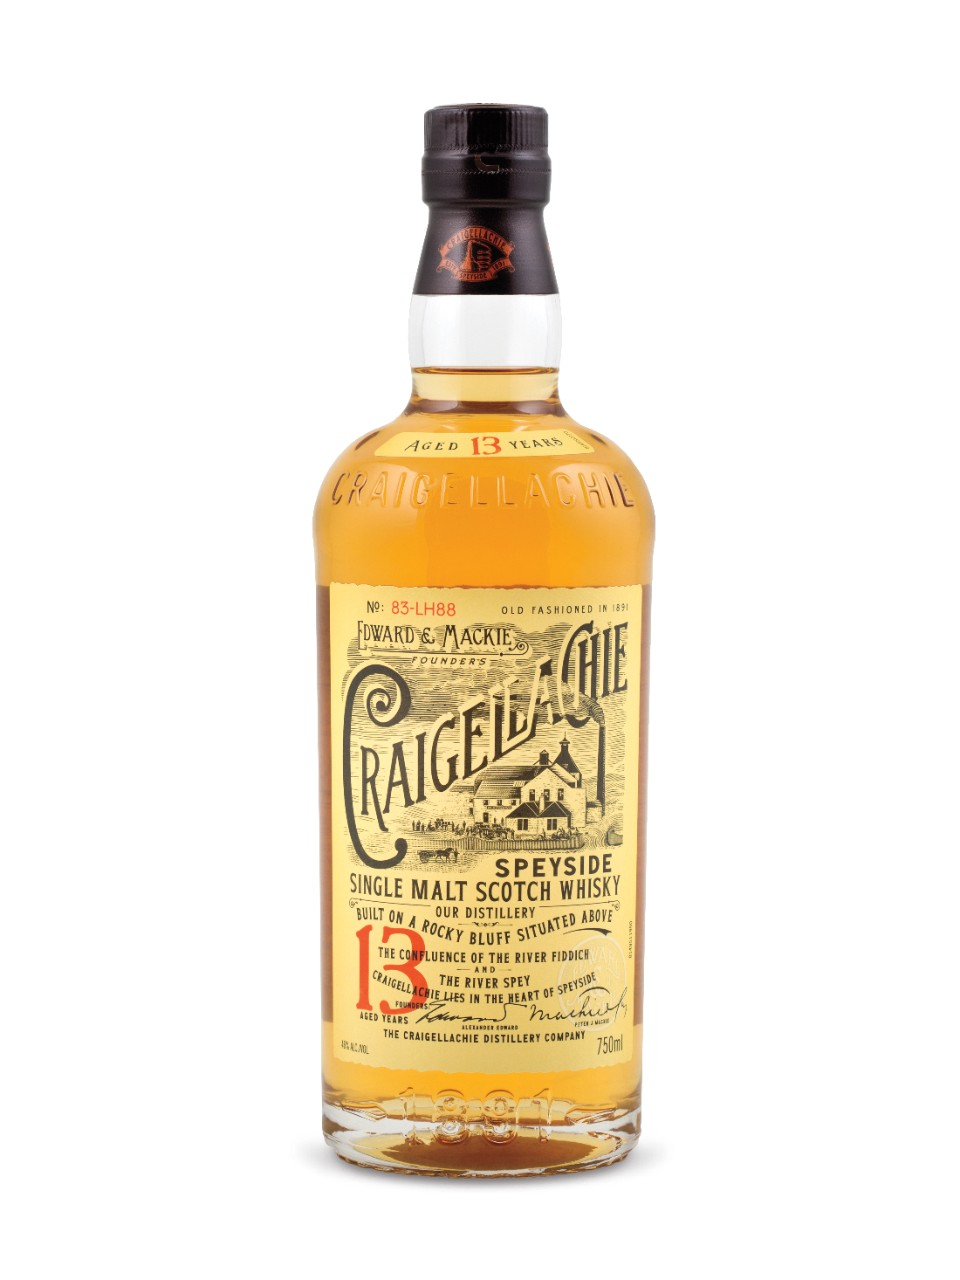 Image for Craigellachie 13 Year Old Speyside Single Malt Scotch Whisky from LCBO